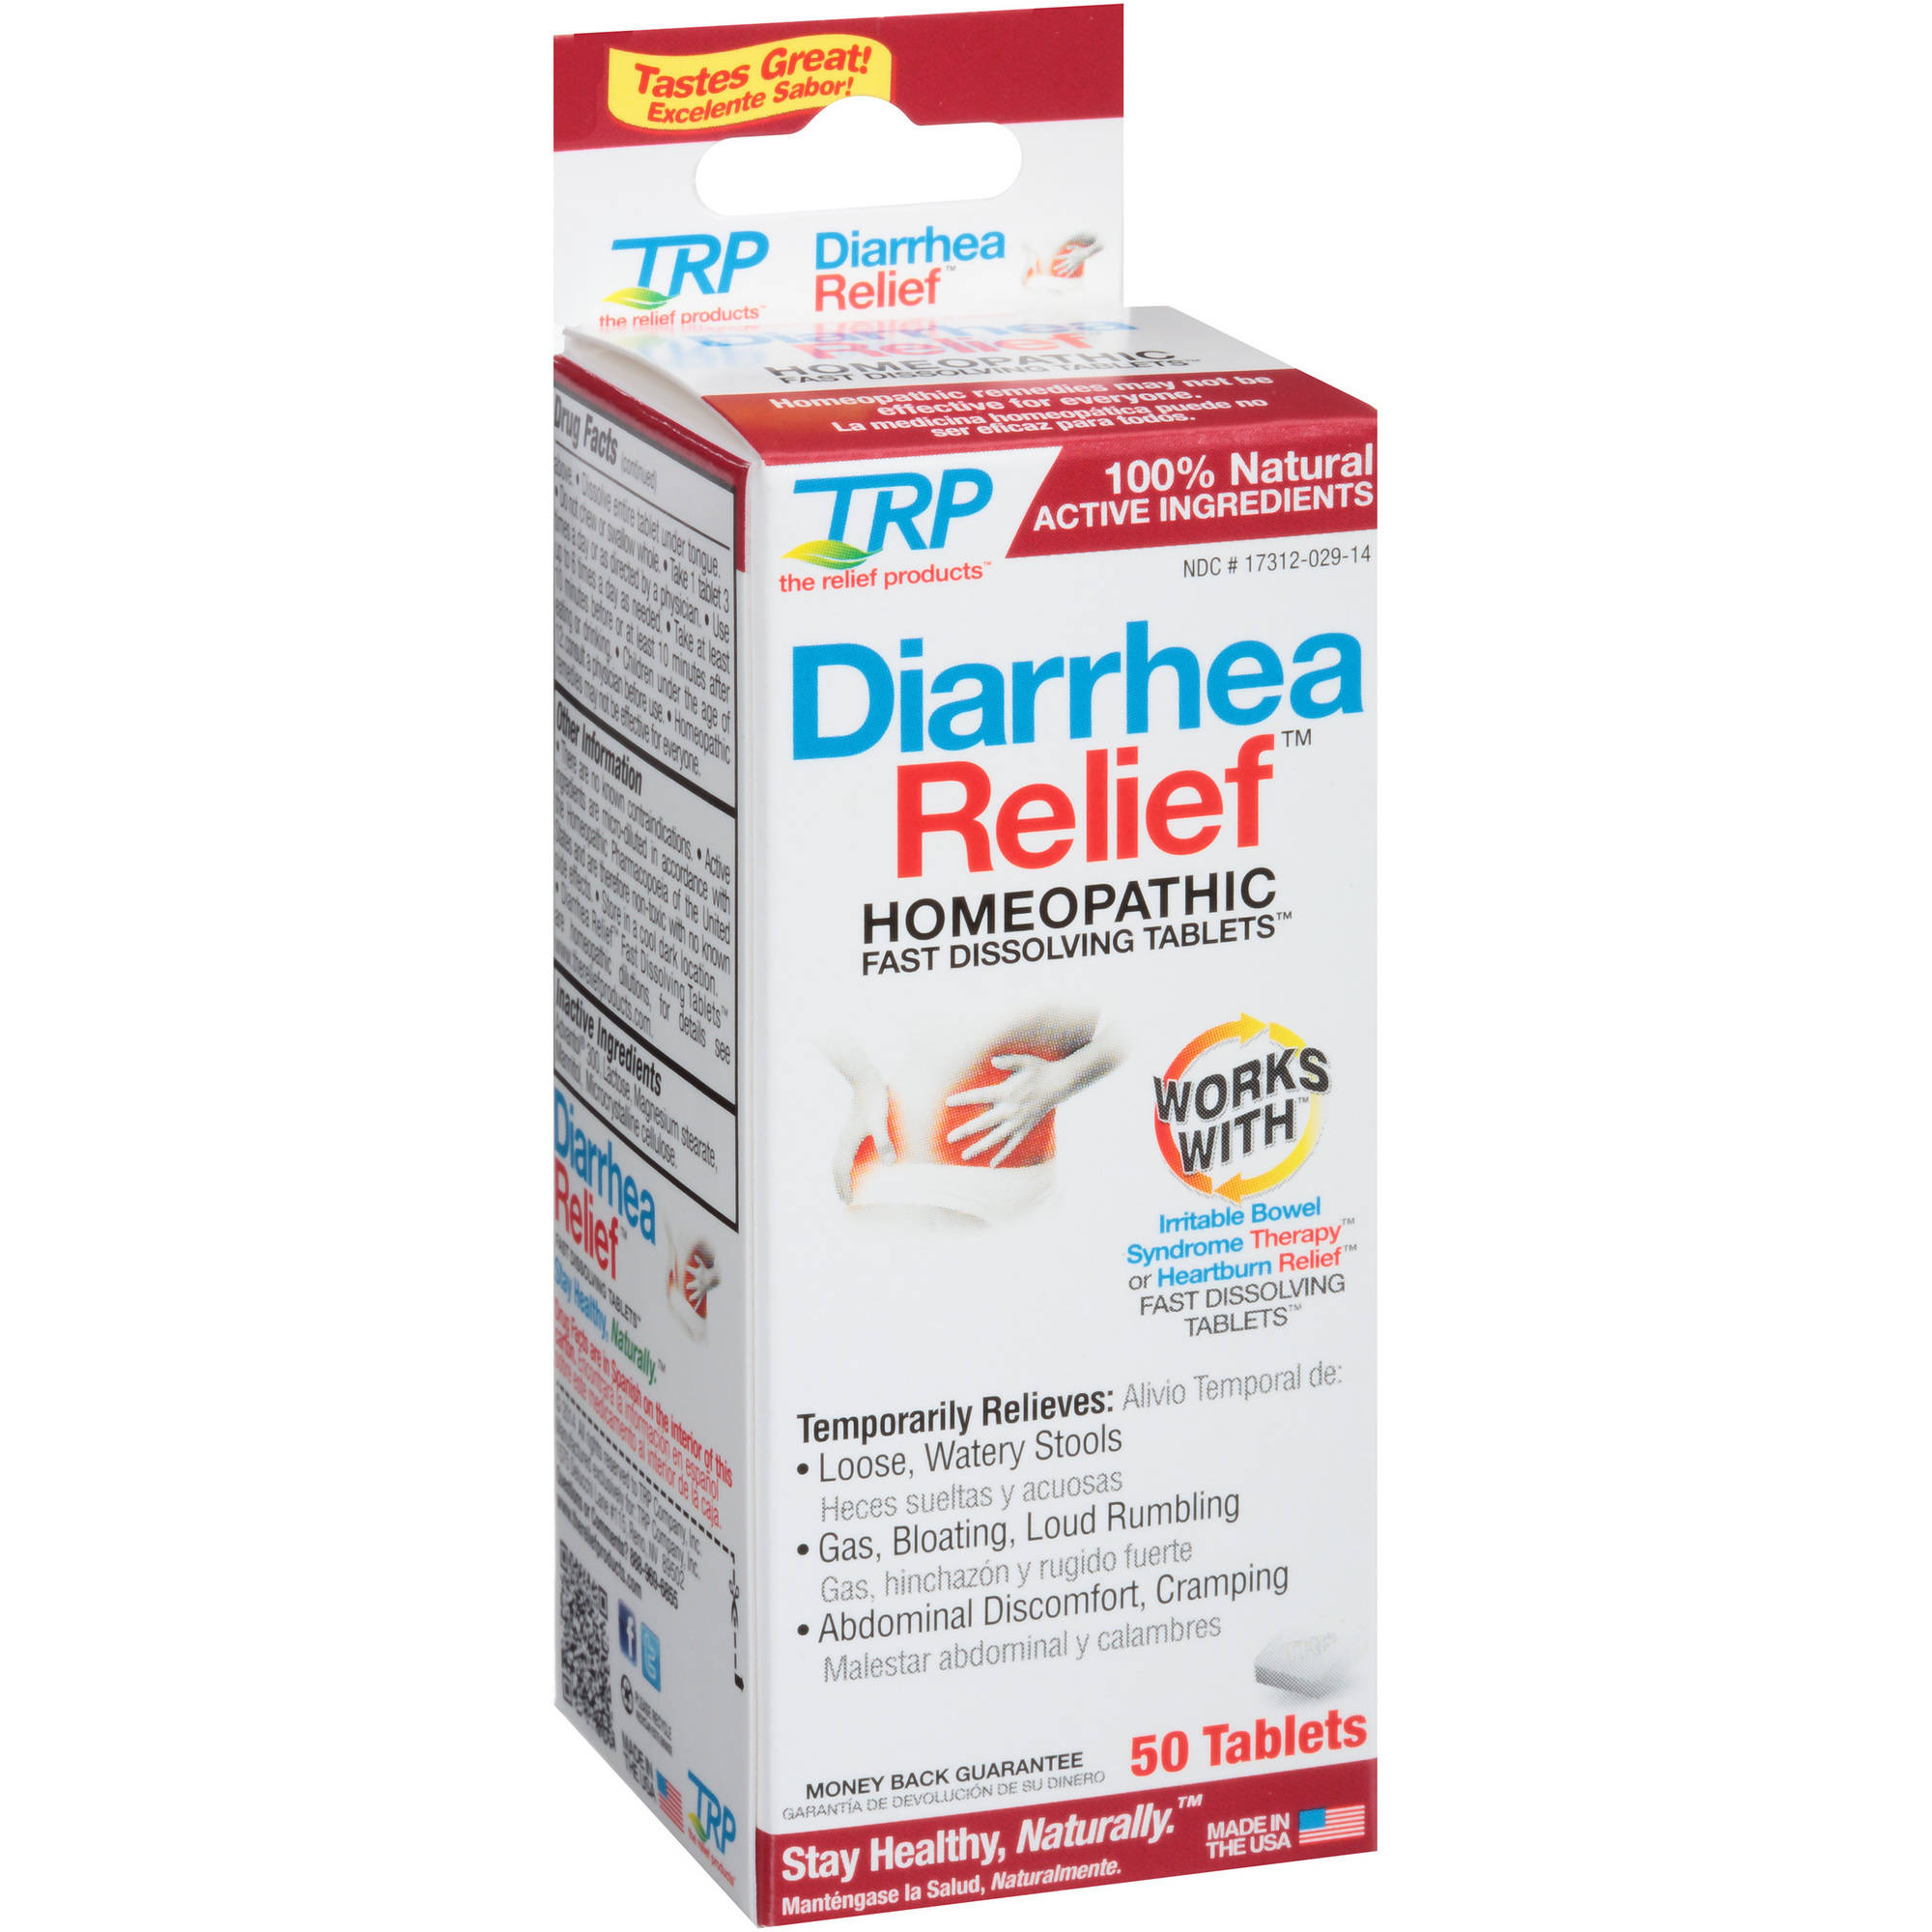 TRP Diarrhea Relief Homeopathic Fast Dissolving Tablets, 50 count